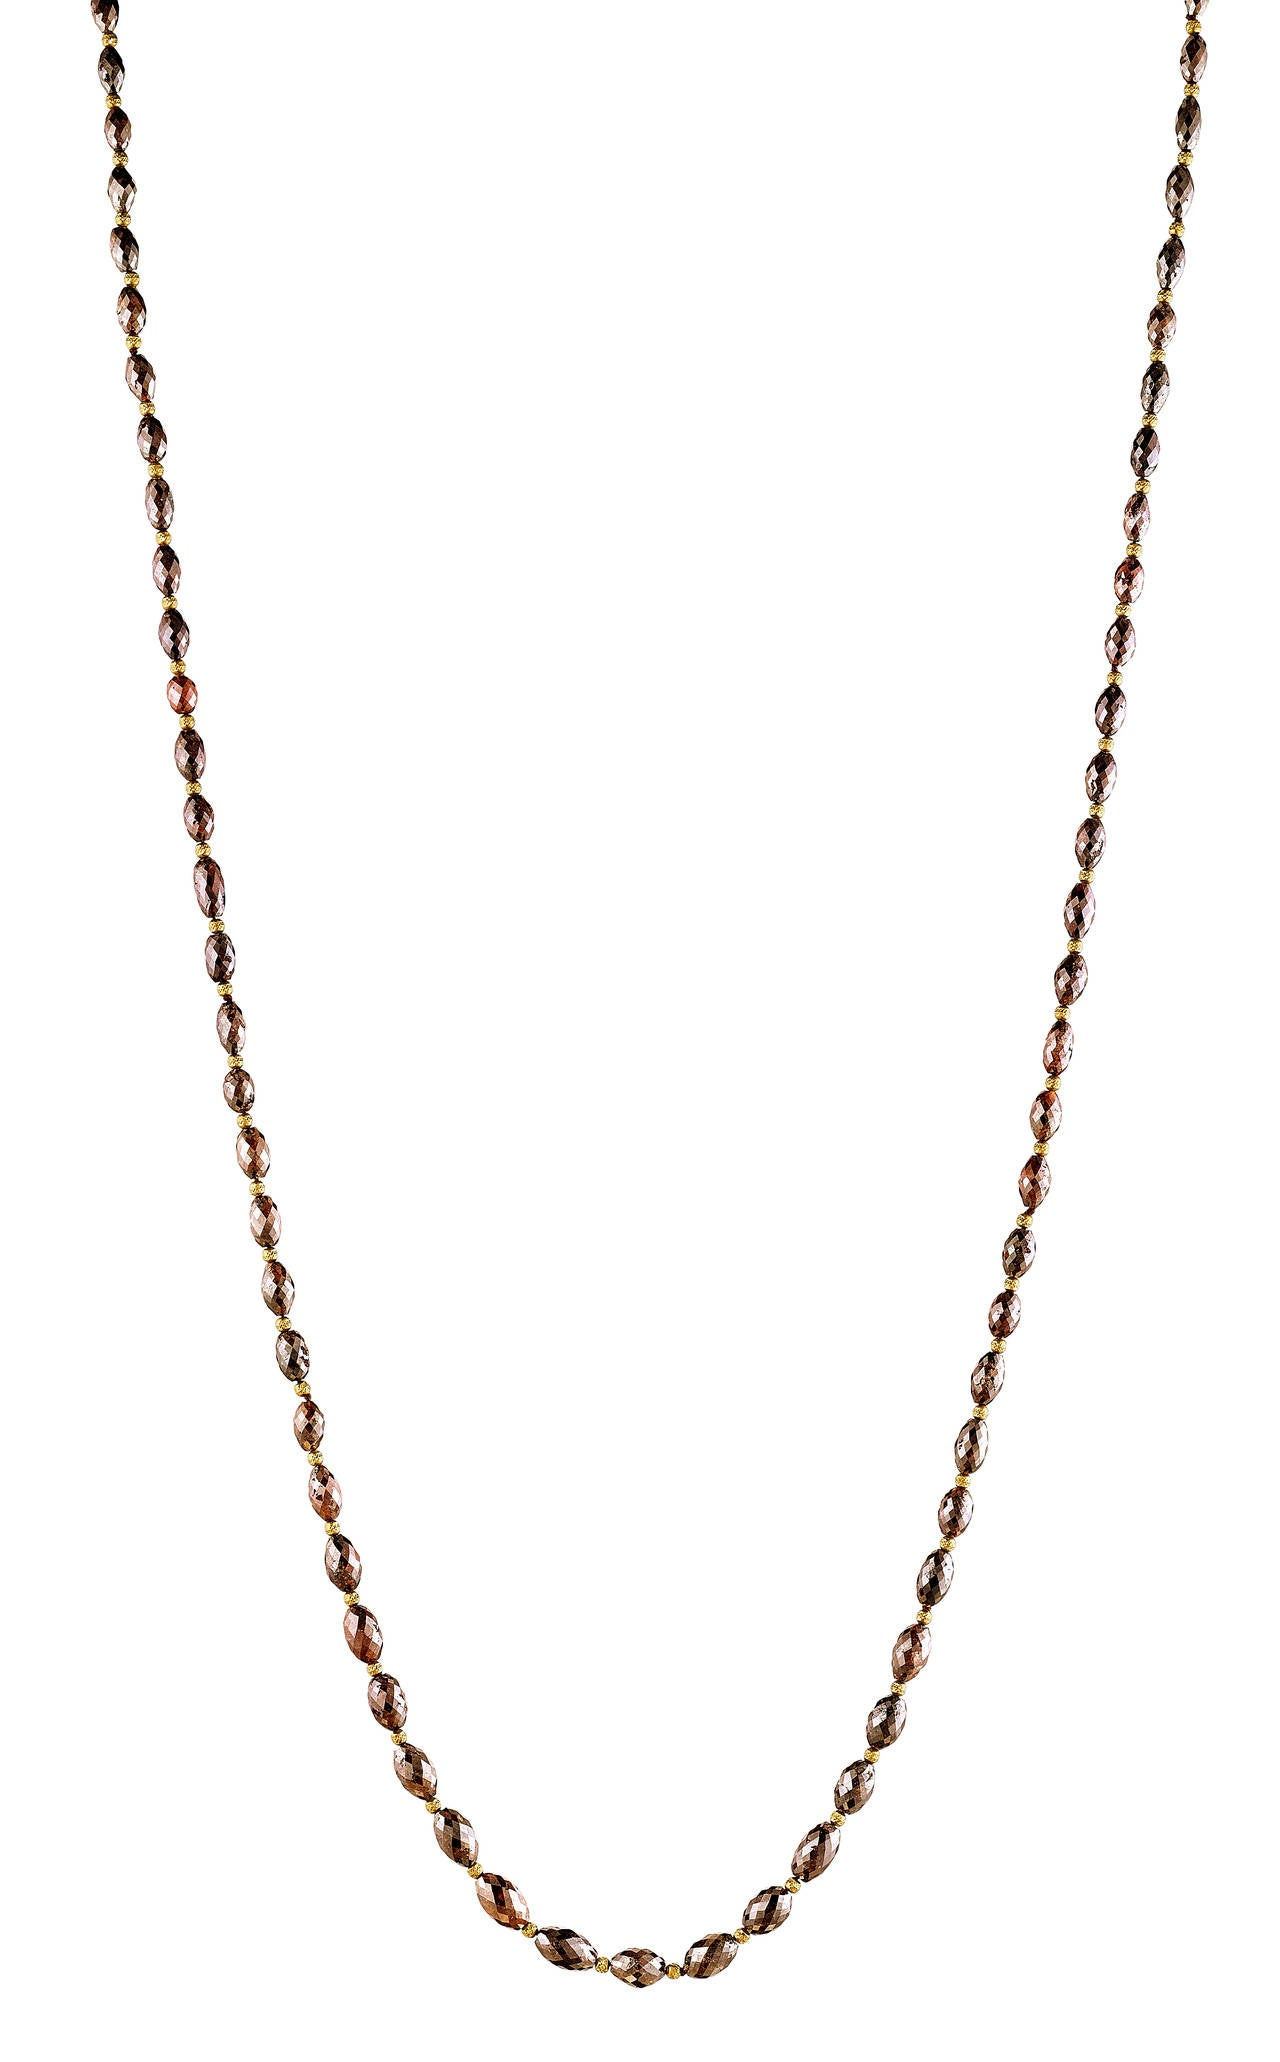 Naomi Sarna Brown Diamond Gold Bead Necklace For Sale 4